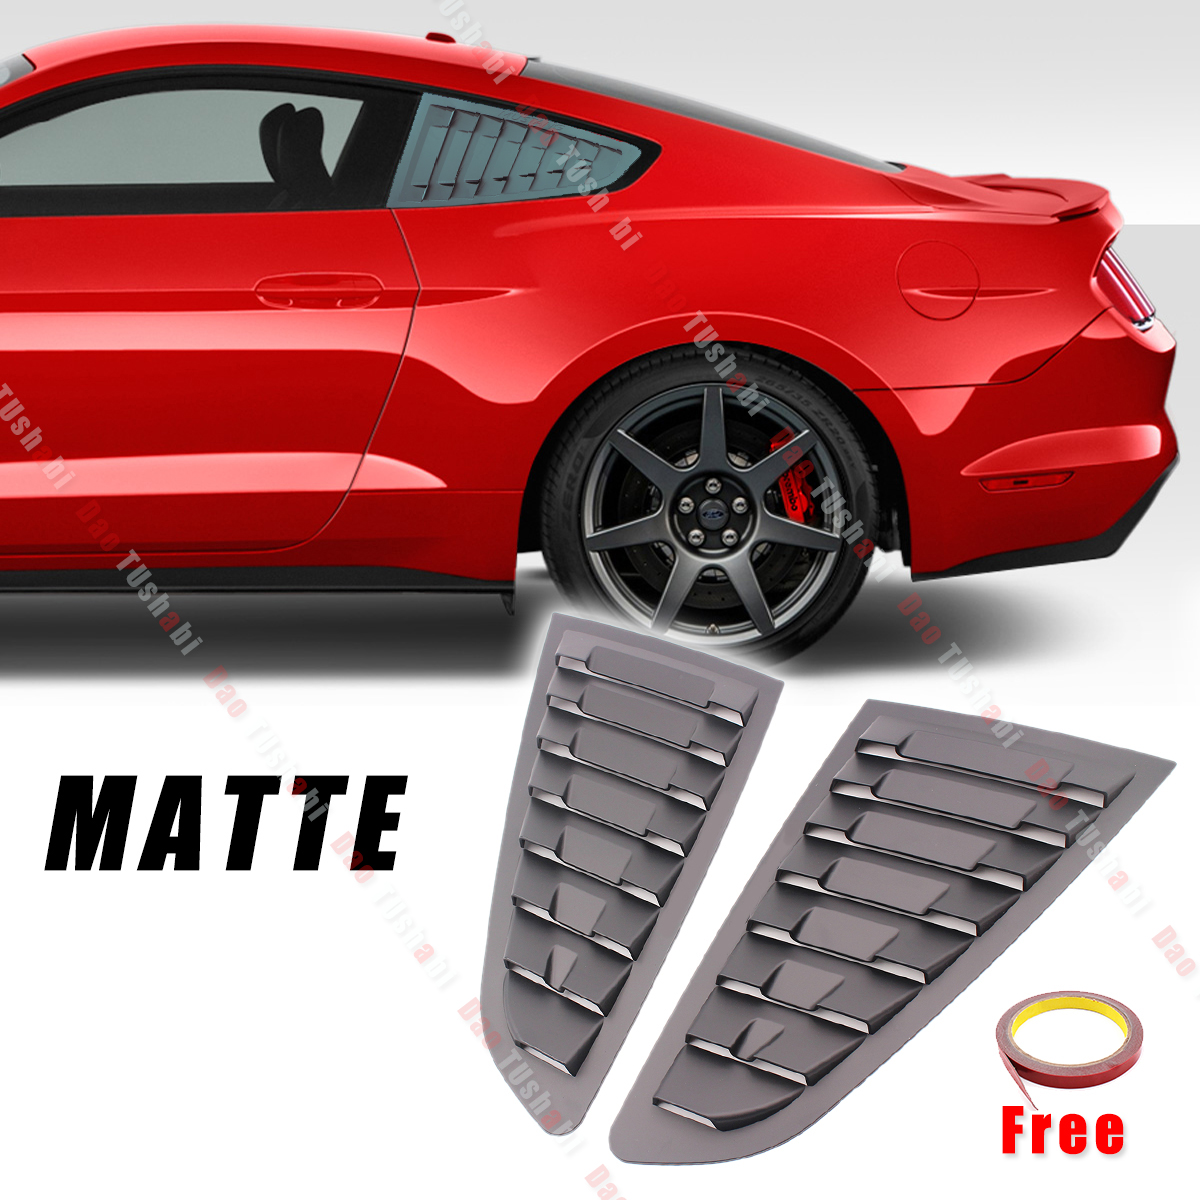 Matte Chrome Interior door handle Panel Molding cover trim for Ford Mustang